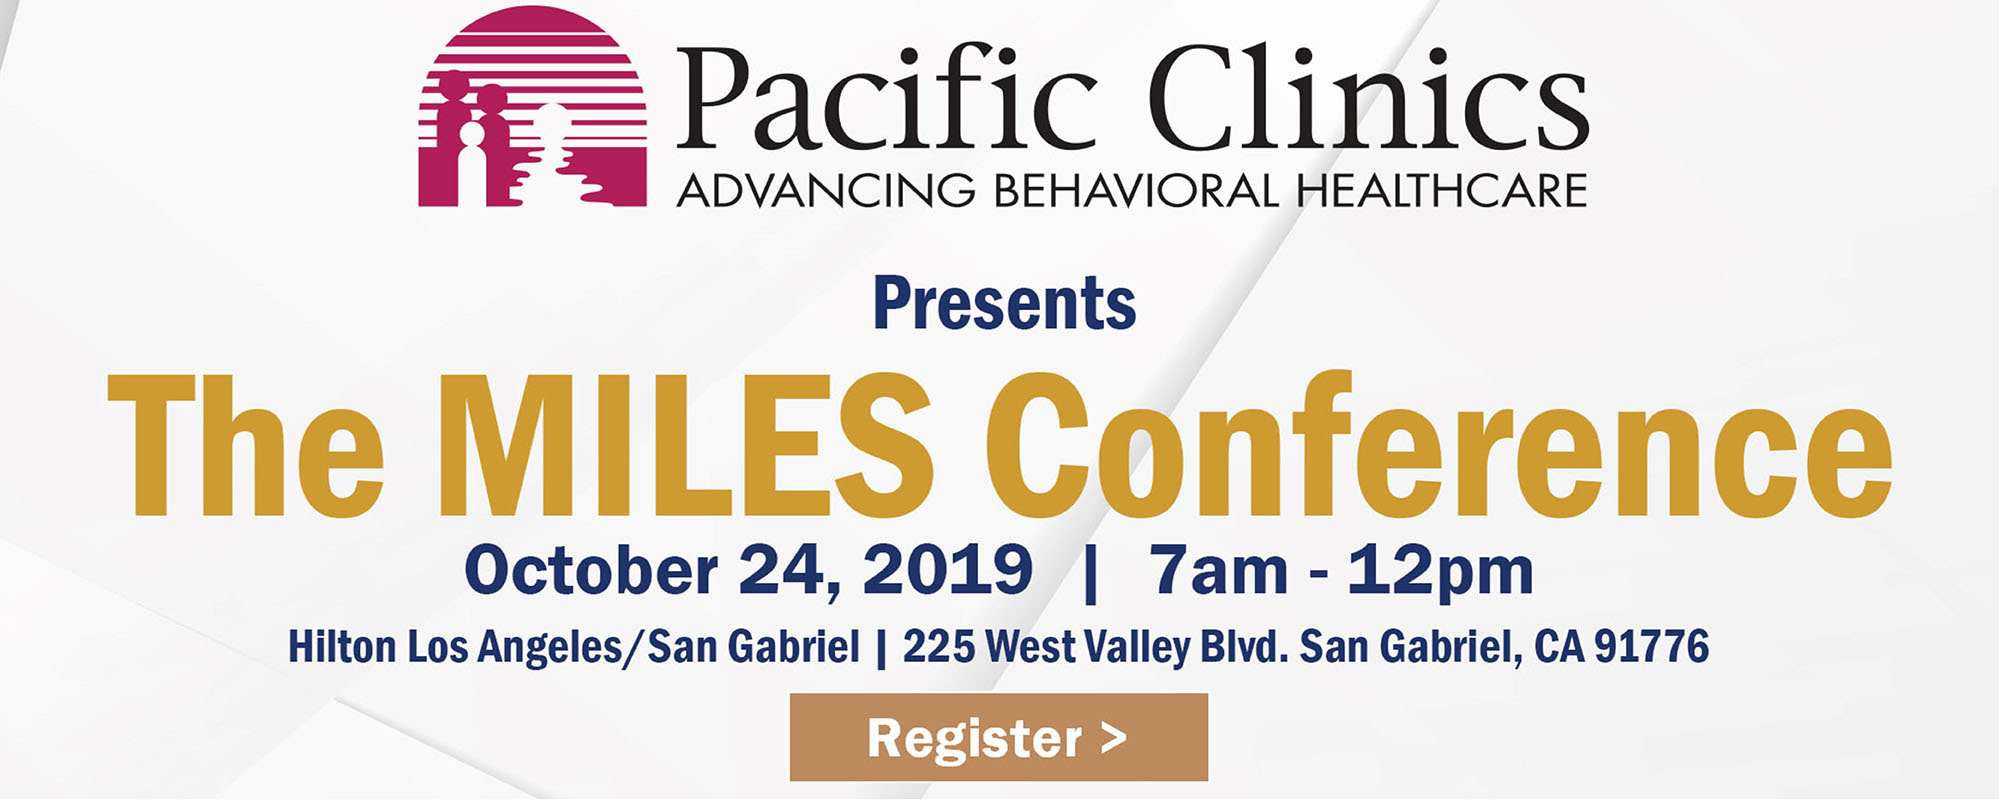 Pacific Clinics Presents The MILES Conference